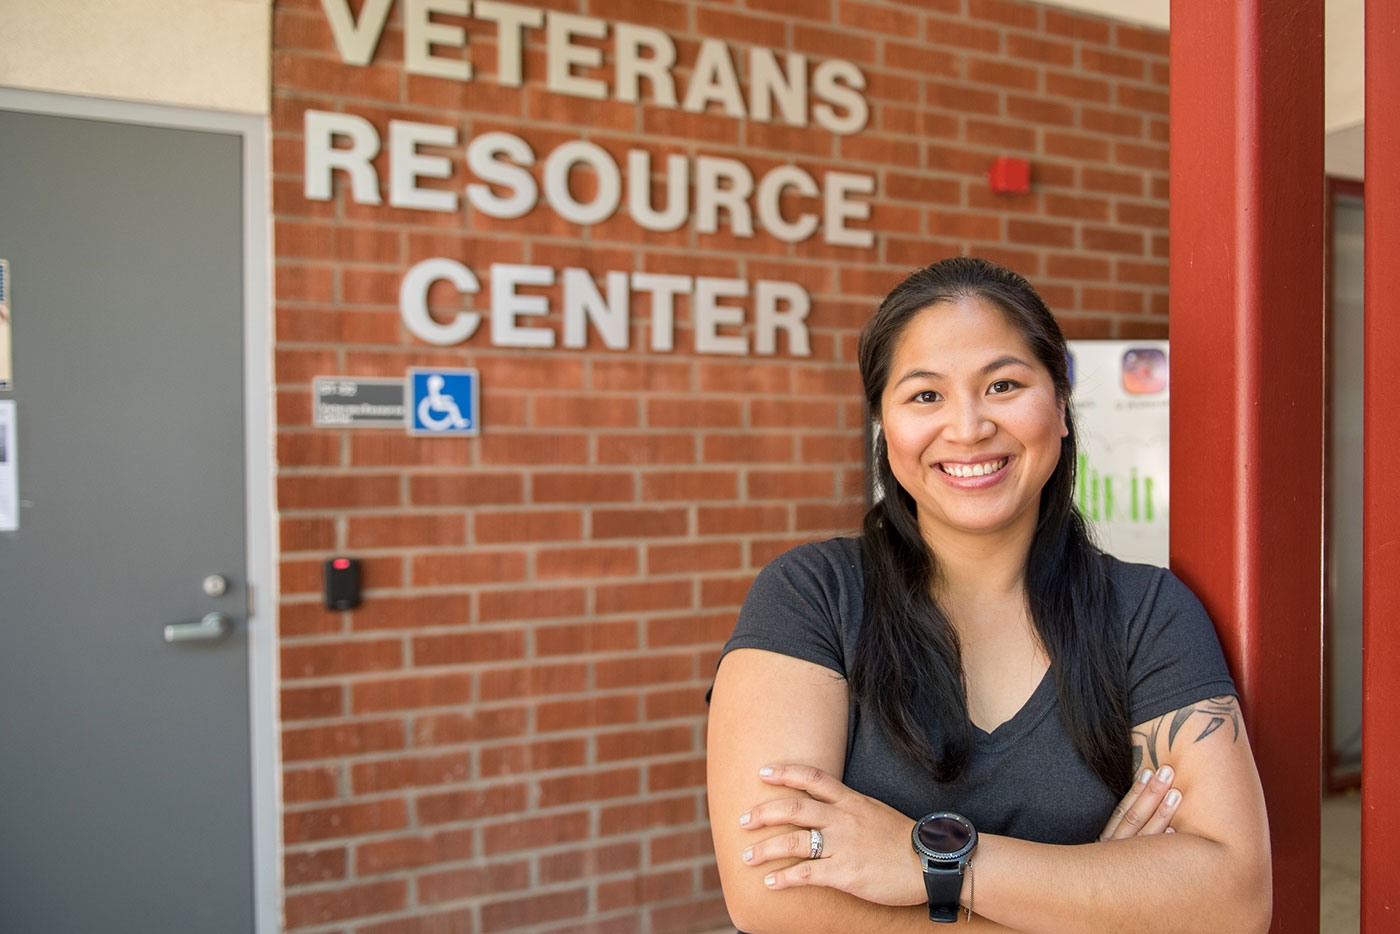 Lydia Keaty at Veterans Resource Center